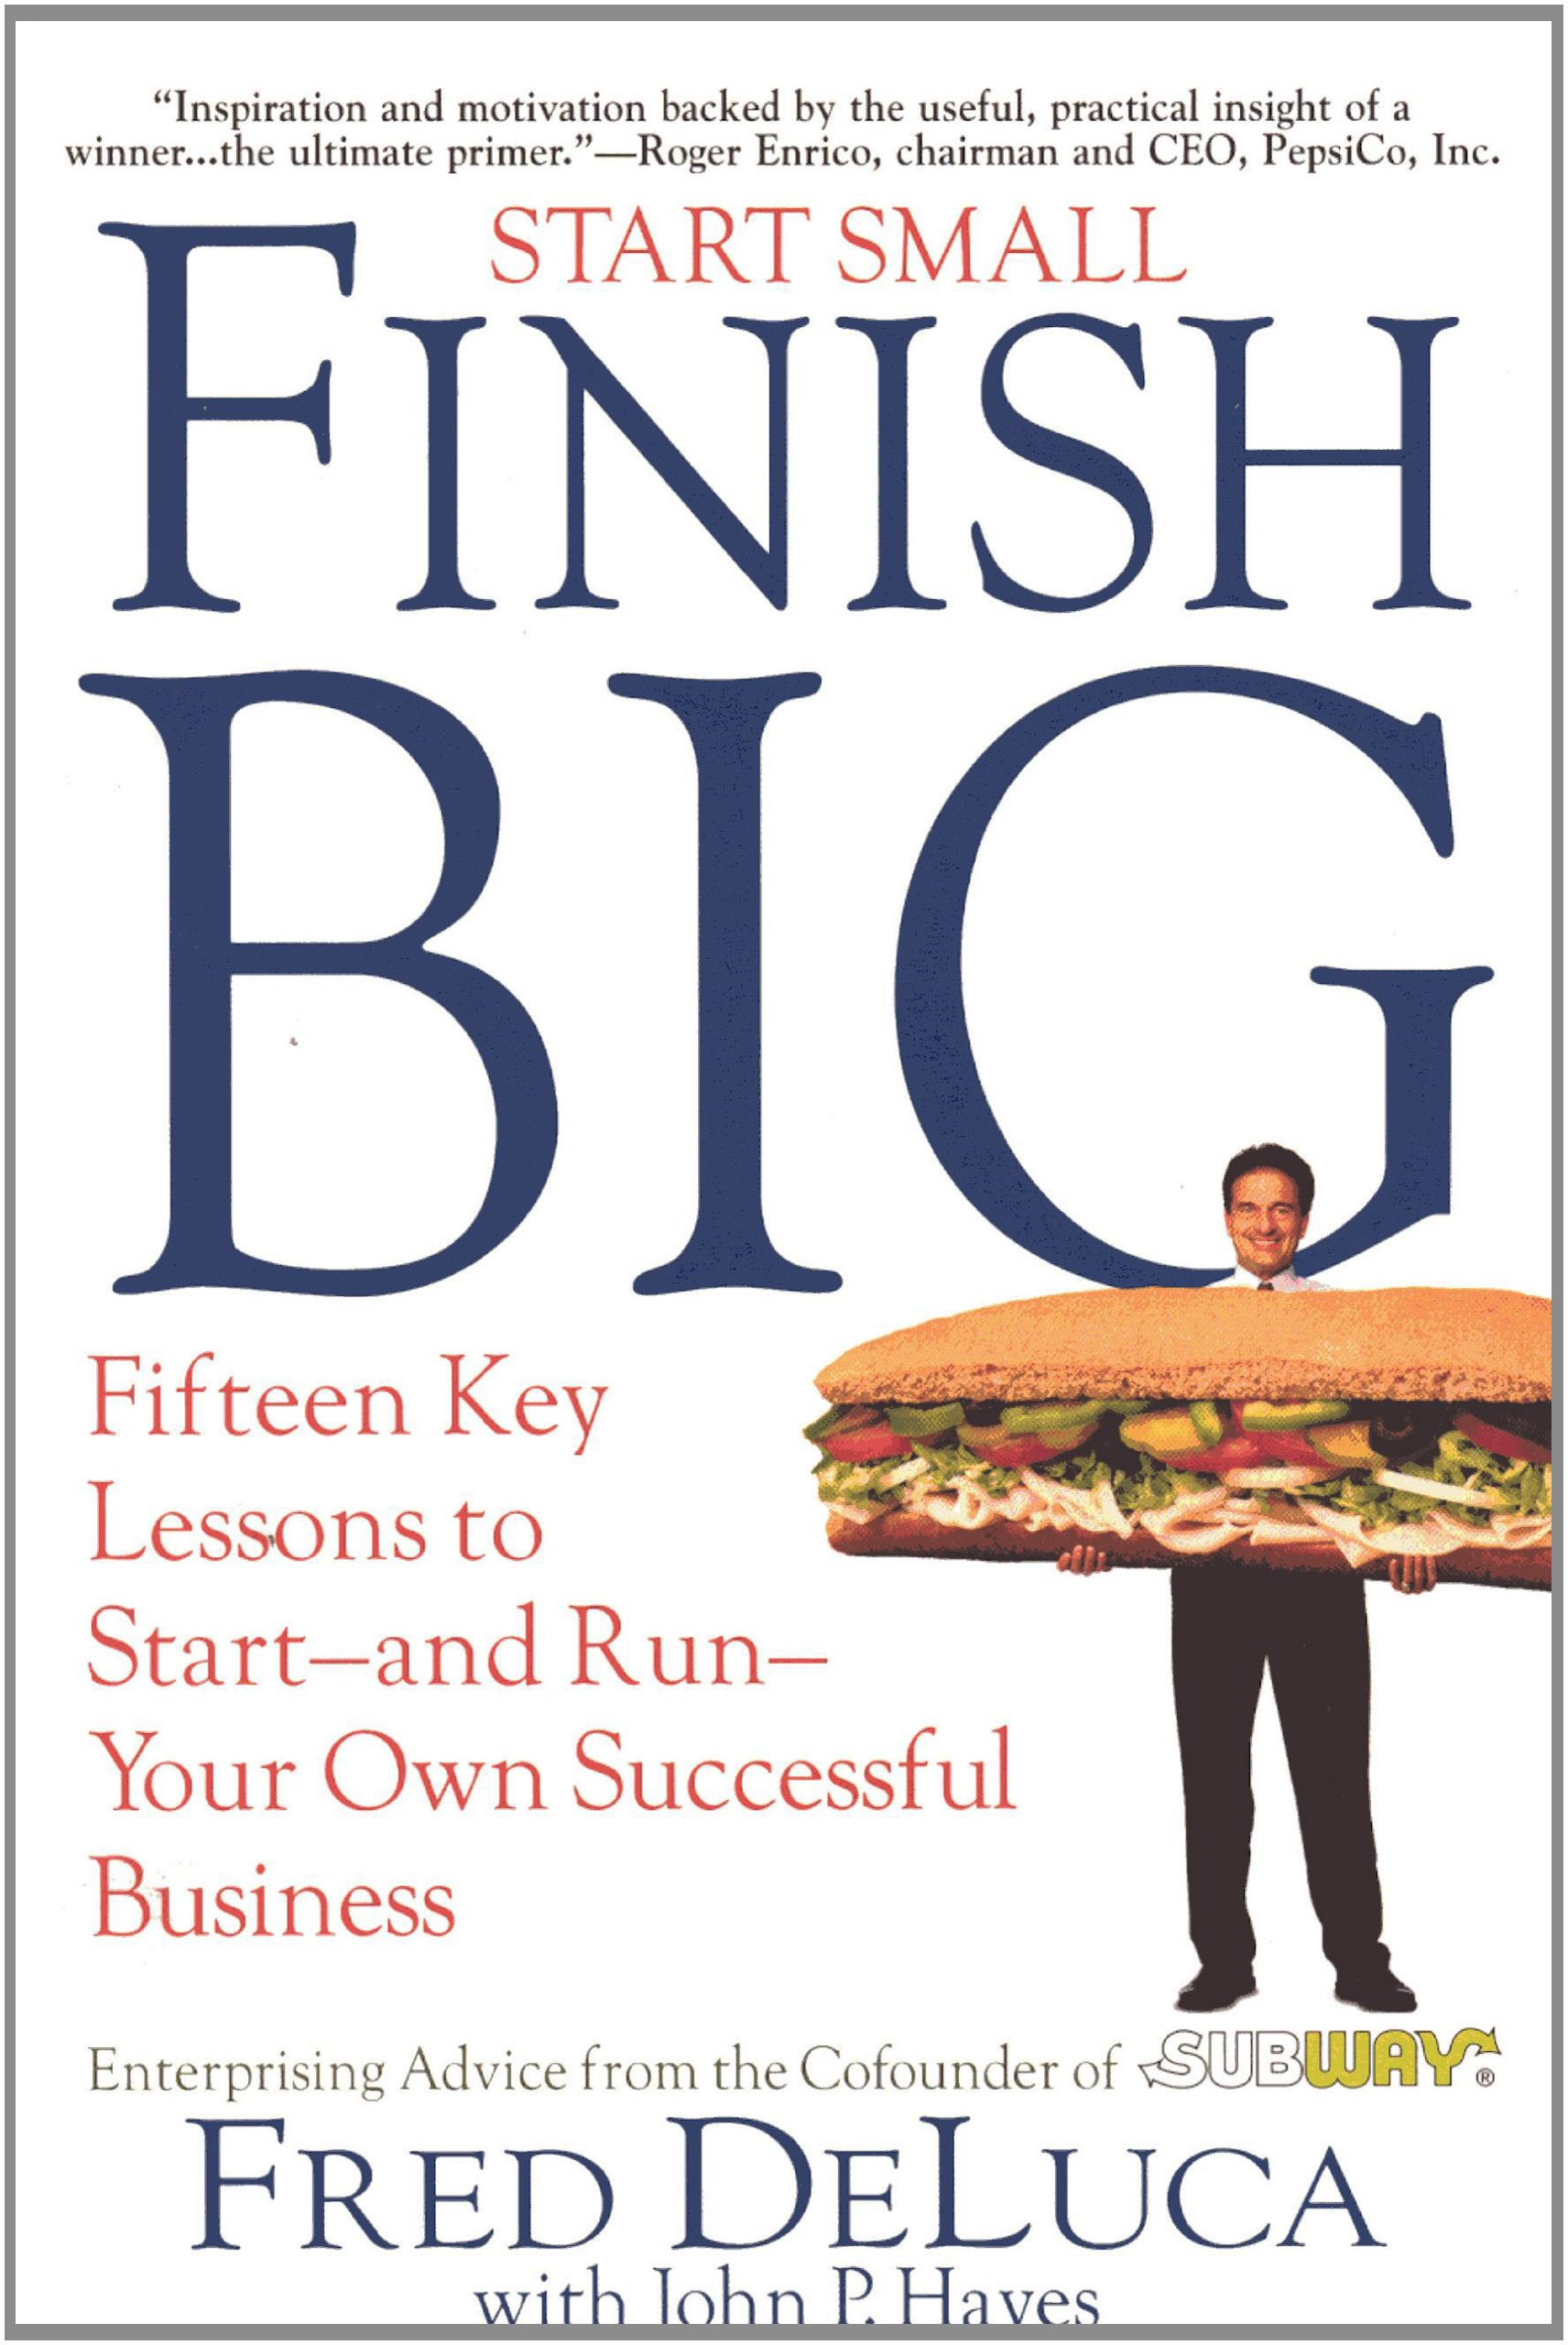 Download Start Small, Finish Big: 15 Key Lessons to Start--and Run--Your Own Successful Business PDF